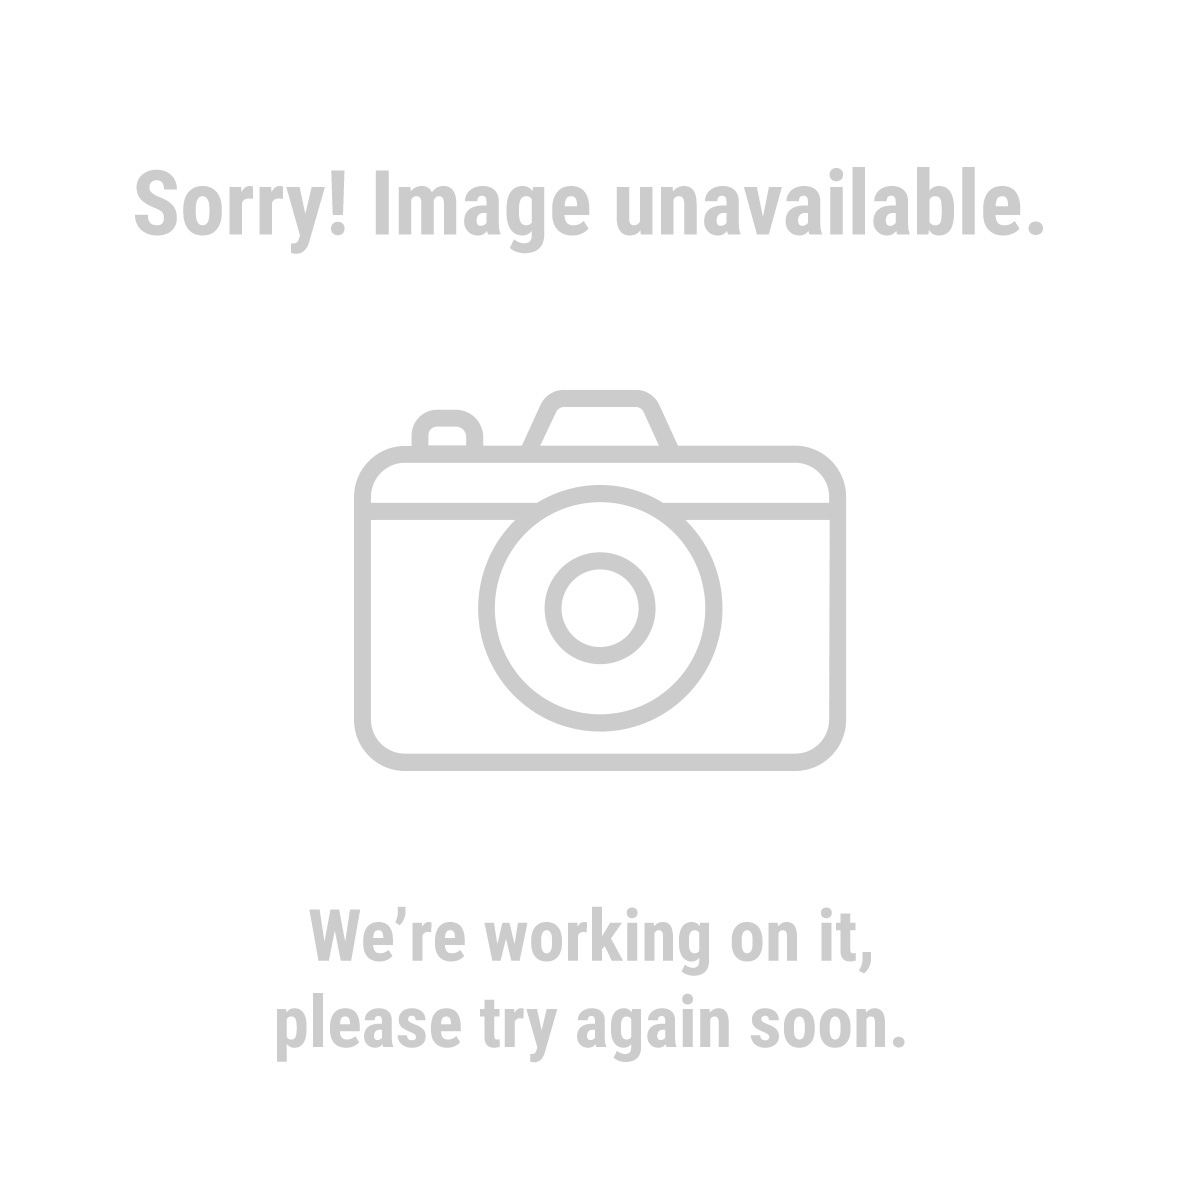 U.S. General® Pro 62662 56 in. 8 Drawer Glossy Red Roller Cabinet Top Ches